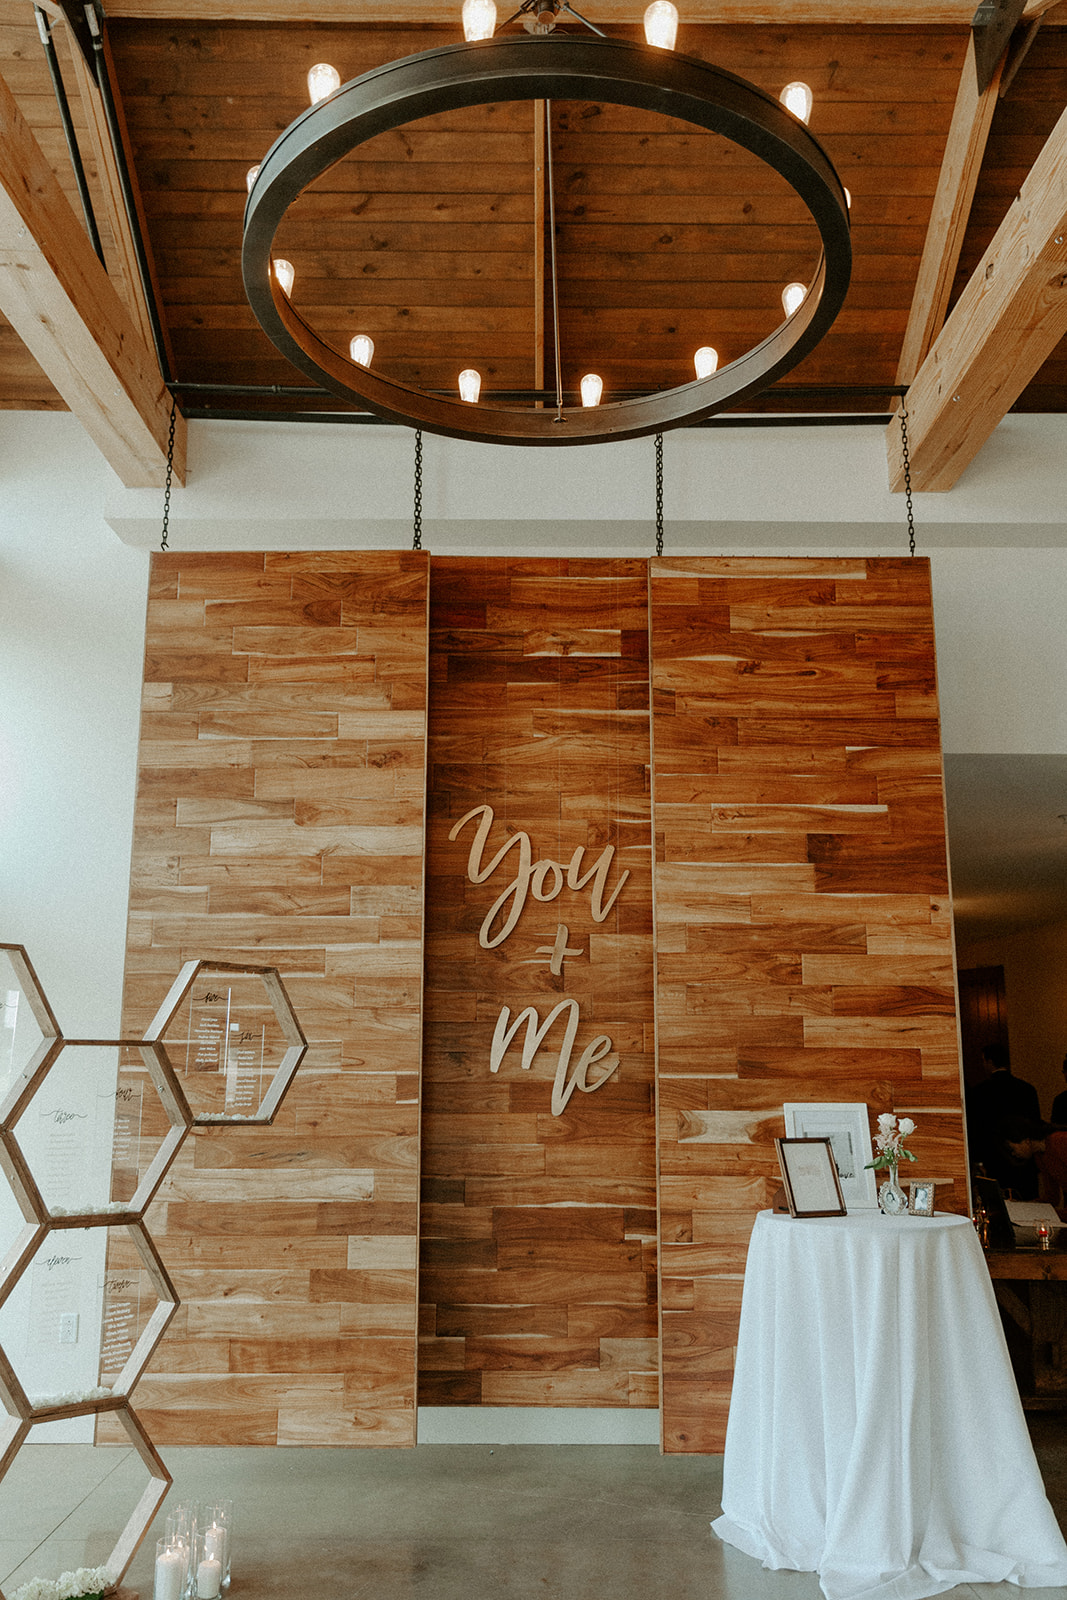 pear_tree_estate_wedding_photographer_champaign_chicago_illinois_midwest_wright_photographs_0725.jpg